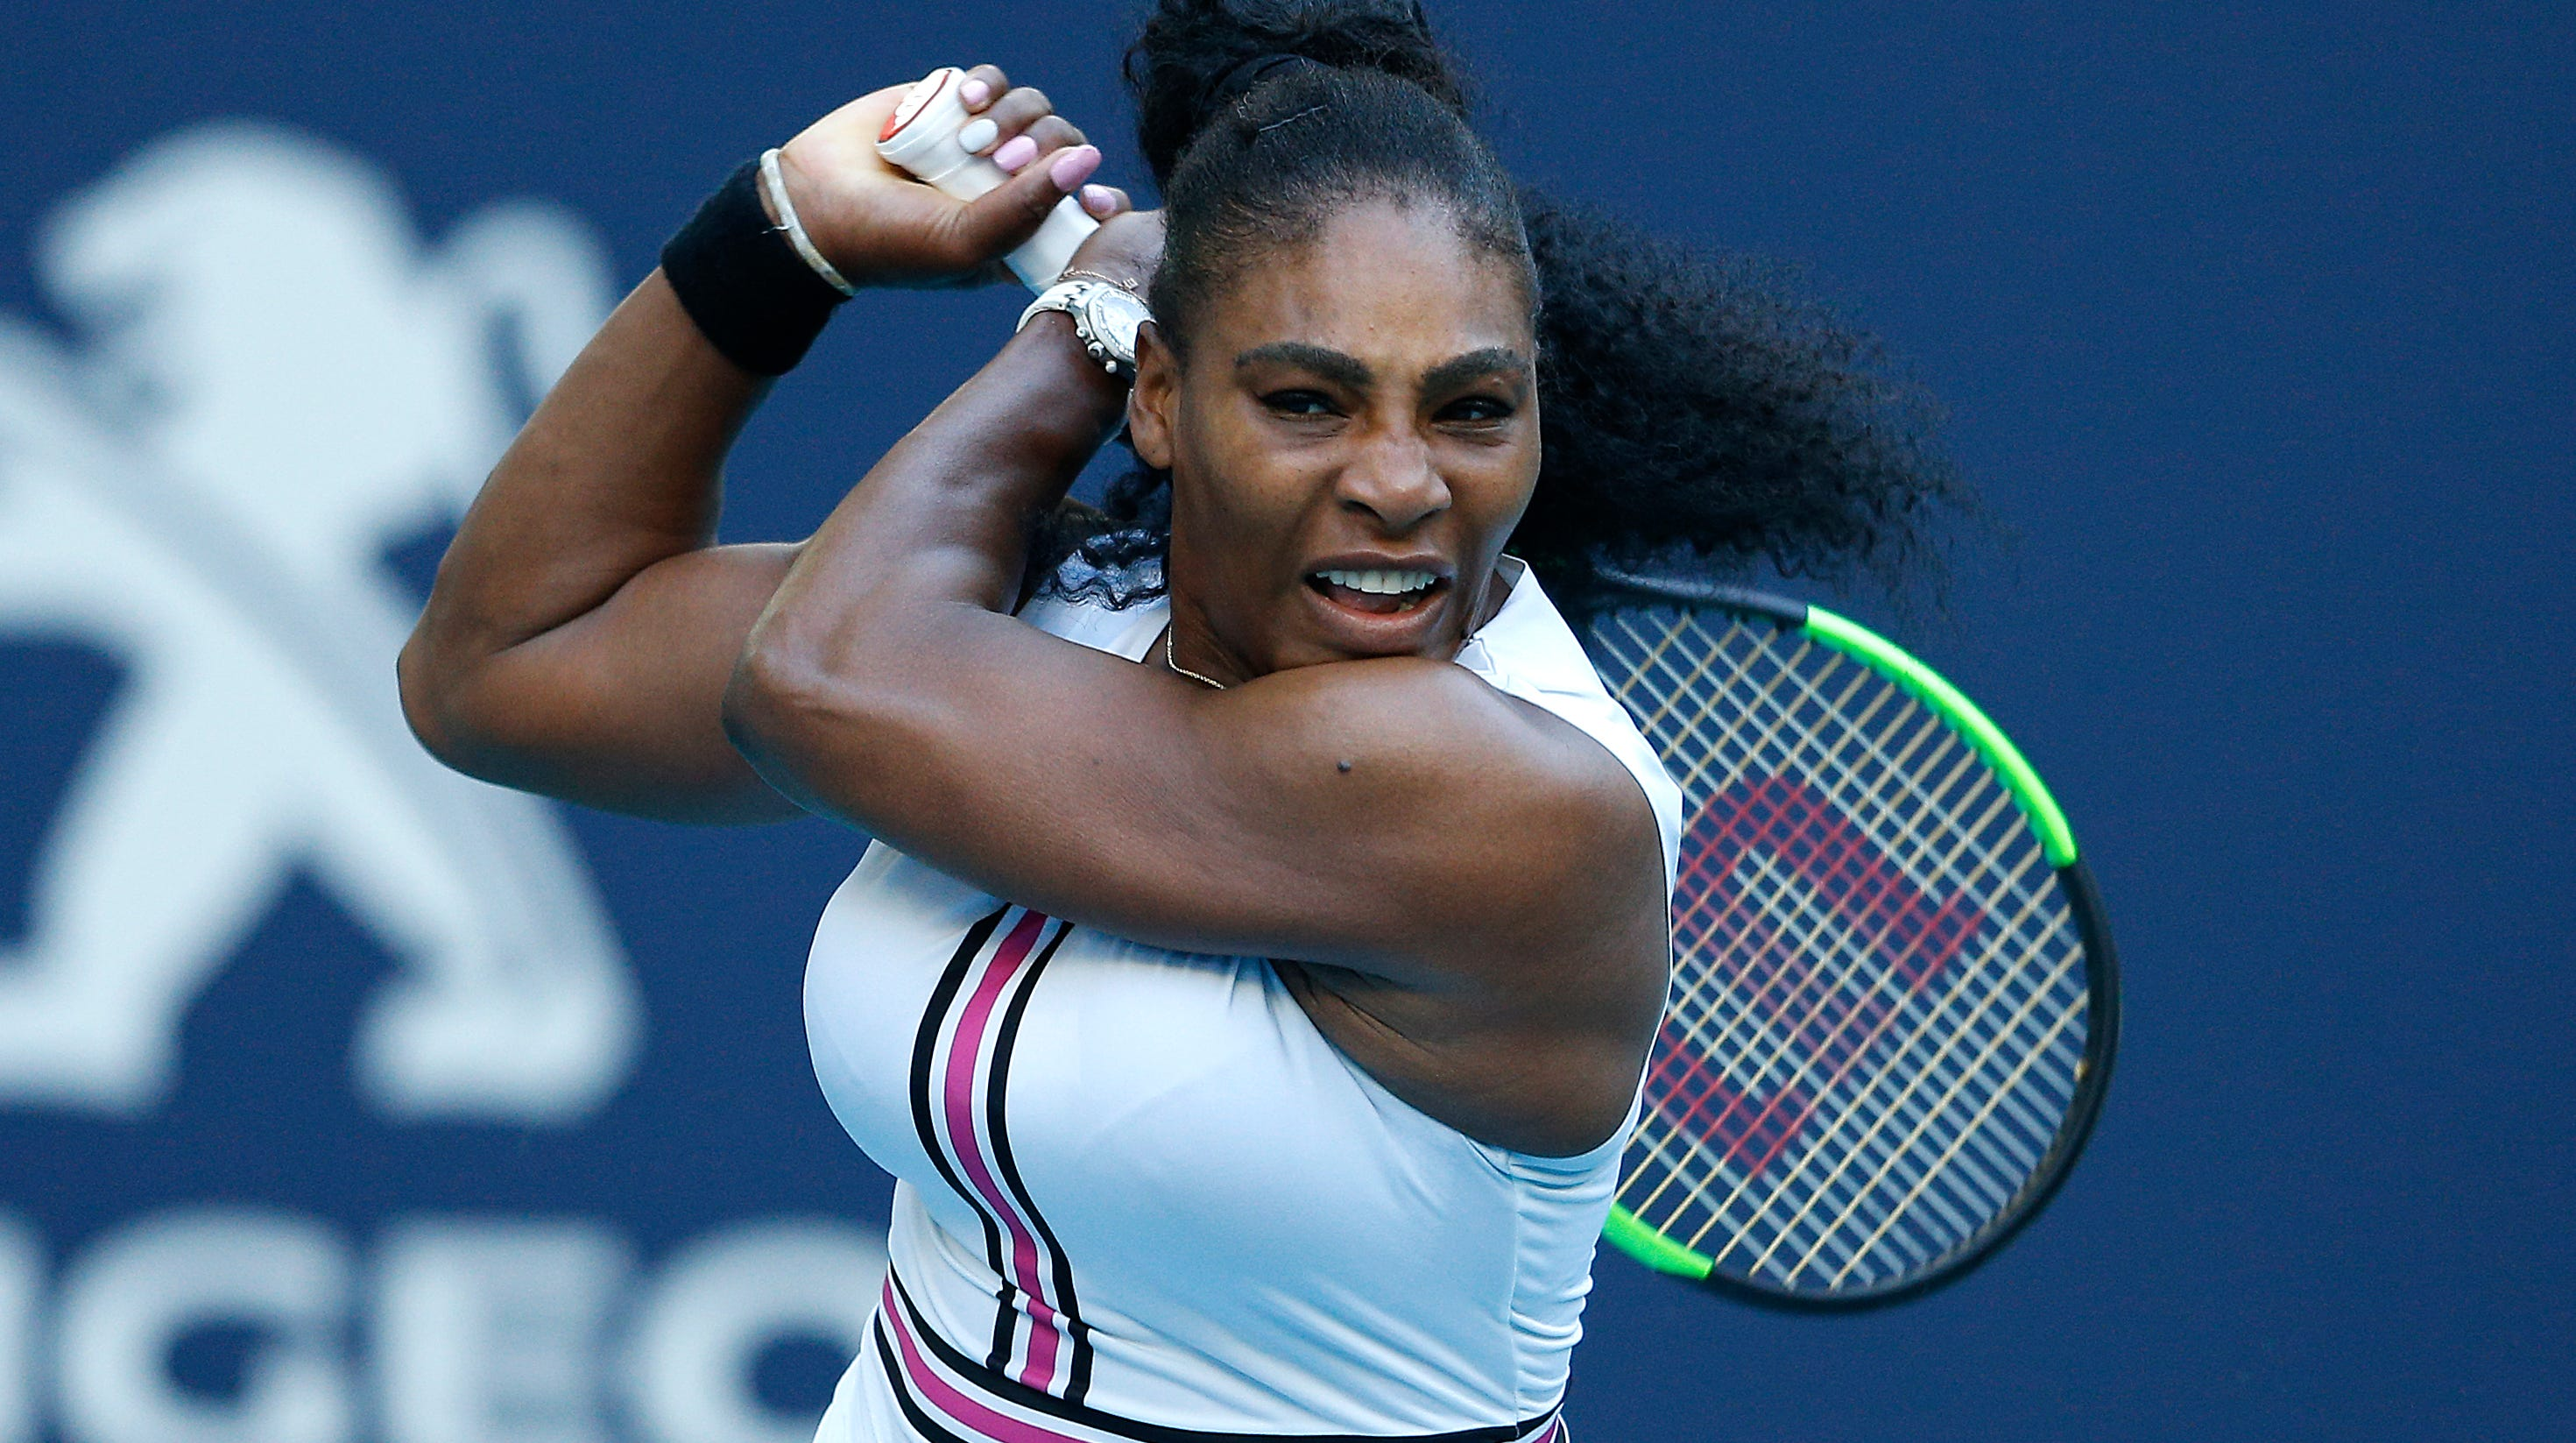 Just like mom: Serena Williams' 1-year-old daughter is a natural with a tennis racket